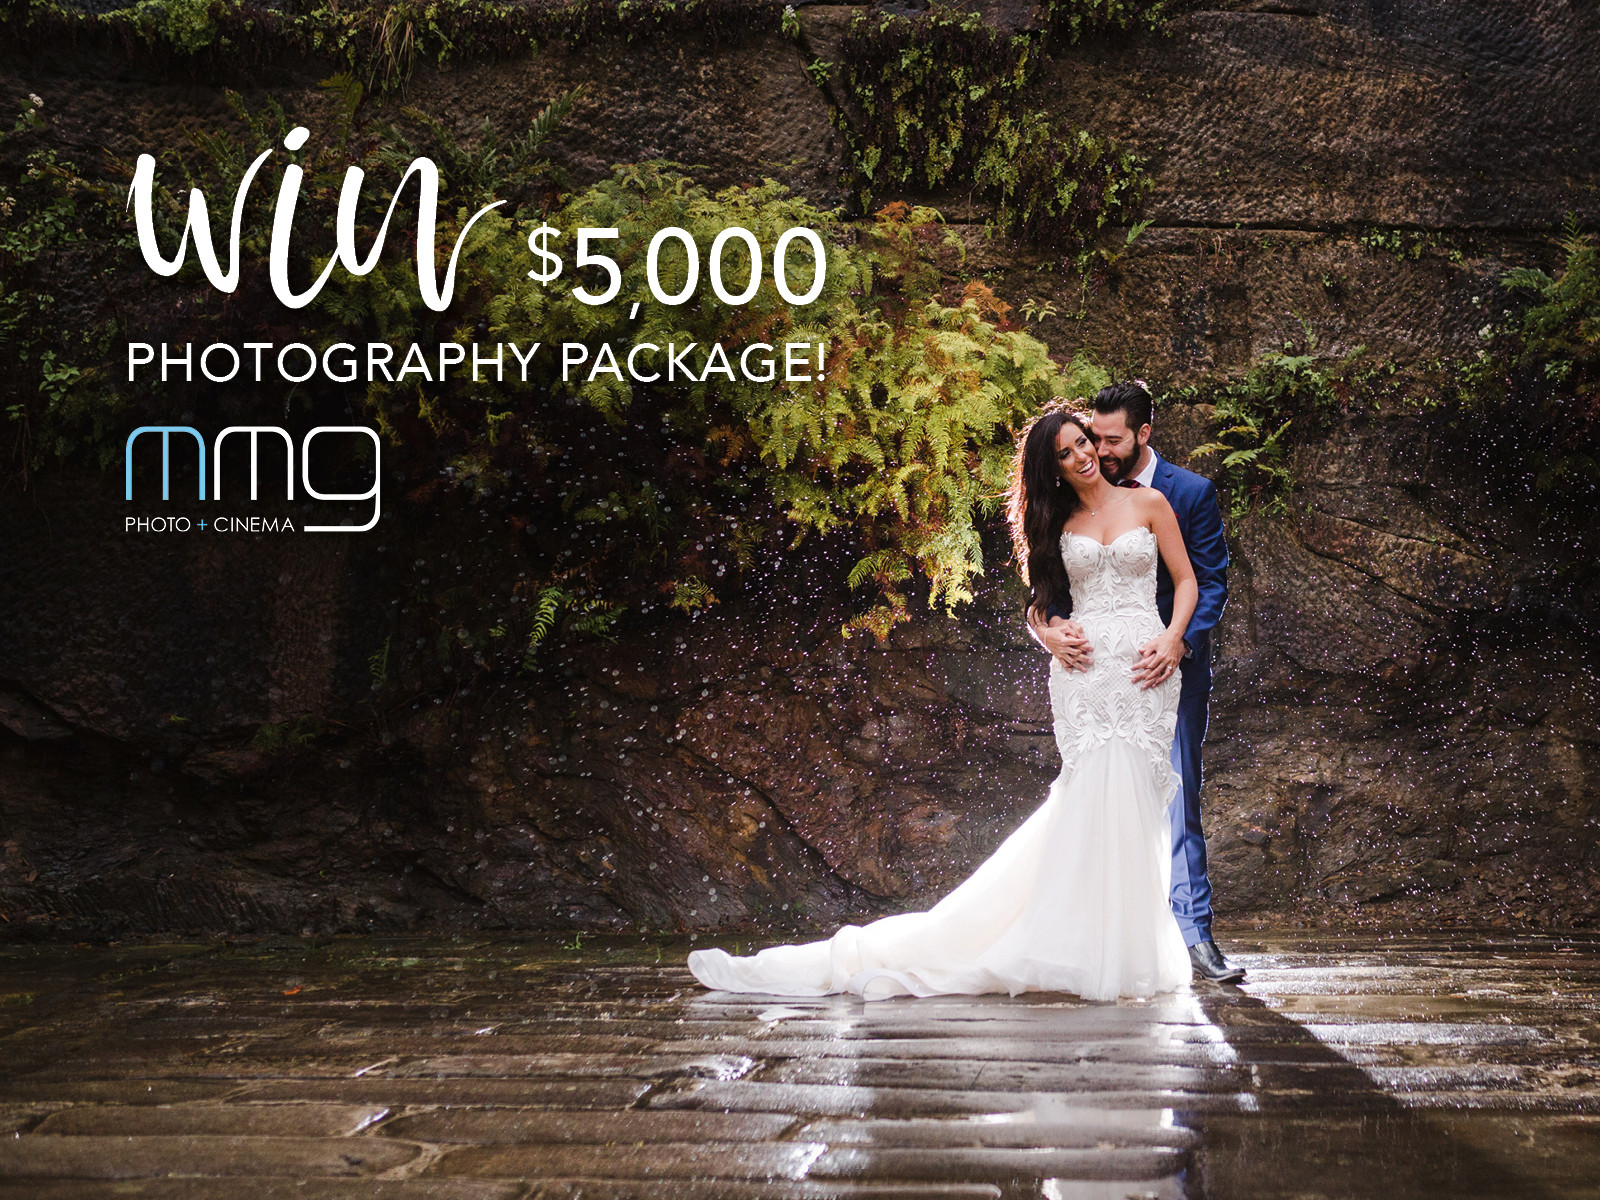 WIN a $5000 Photography Package with MMG Photo + Cinema ... Don't miss out!